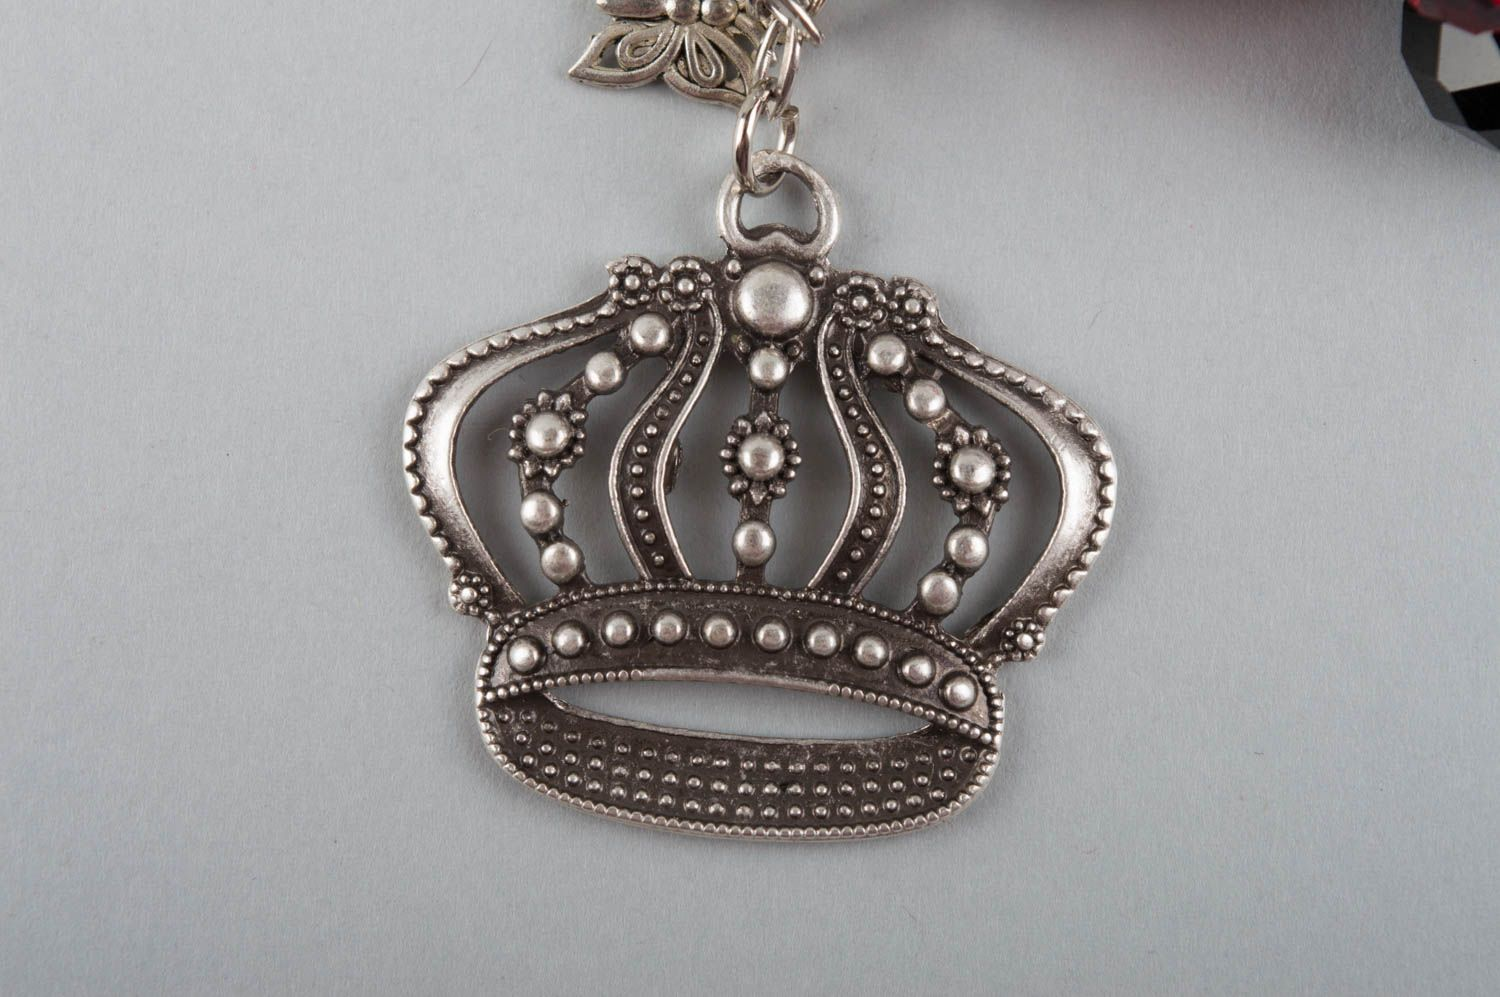 keychains Handmade keychain made of glass beads with charm in shape of crown for girls - MADEheart.com